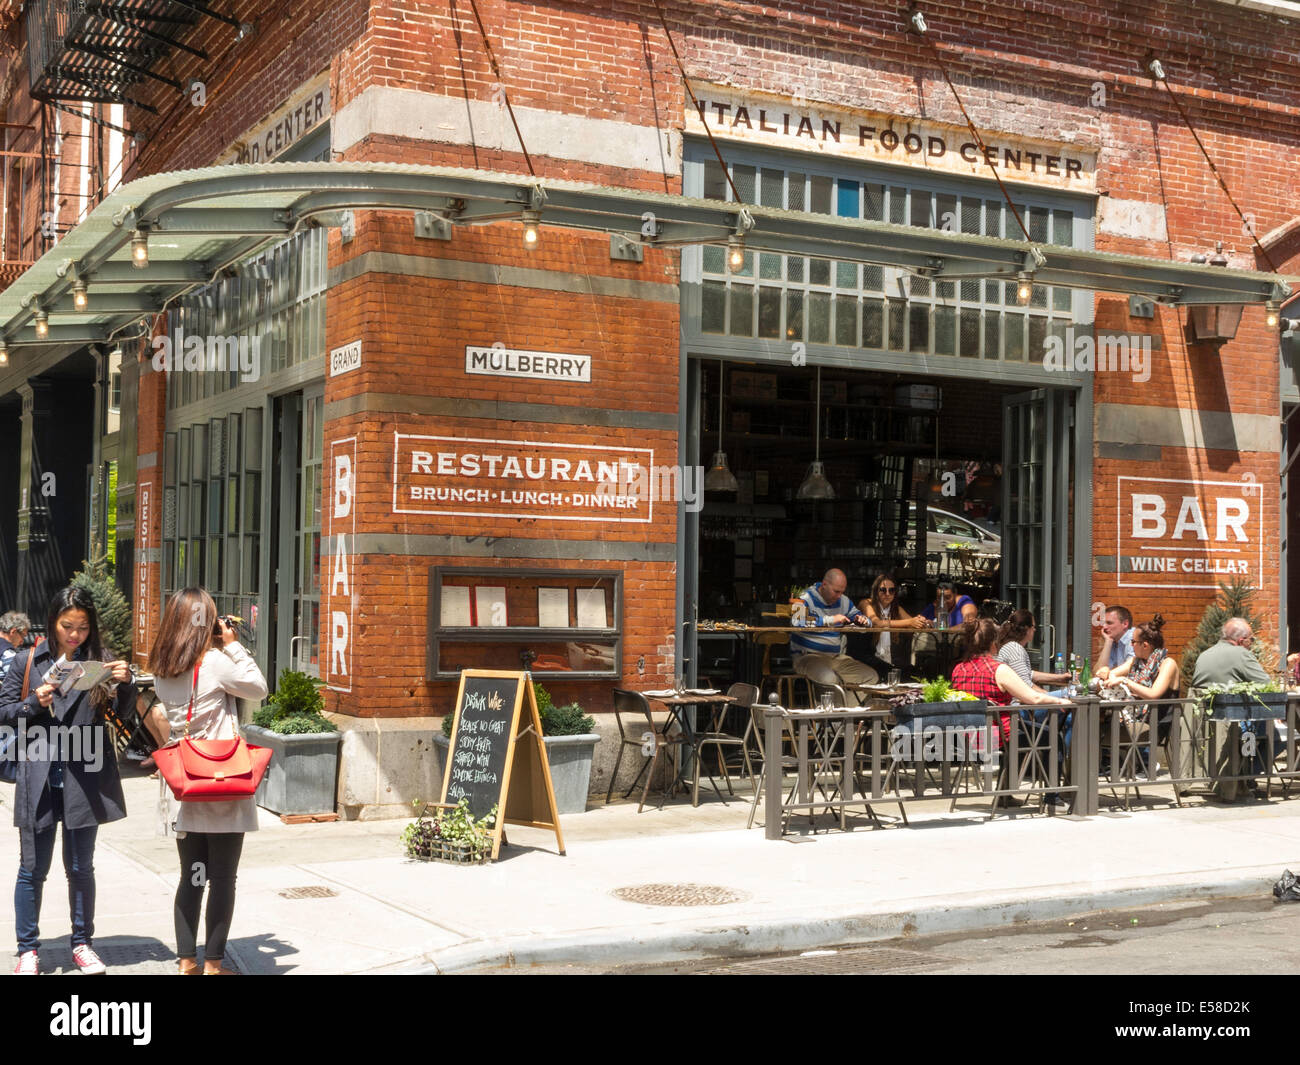 Italian Restaurant Little Italy Nyc Stock Photo 72100635